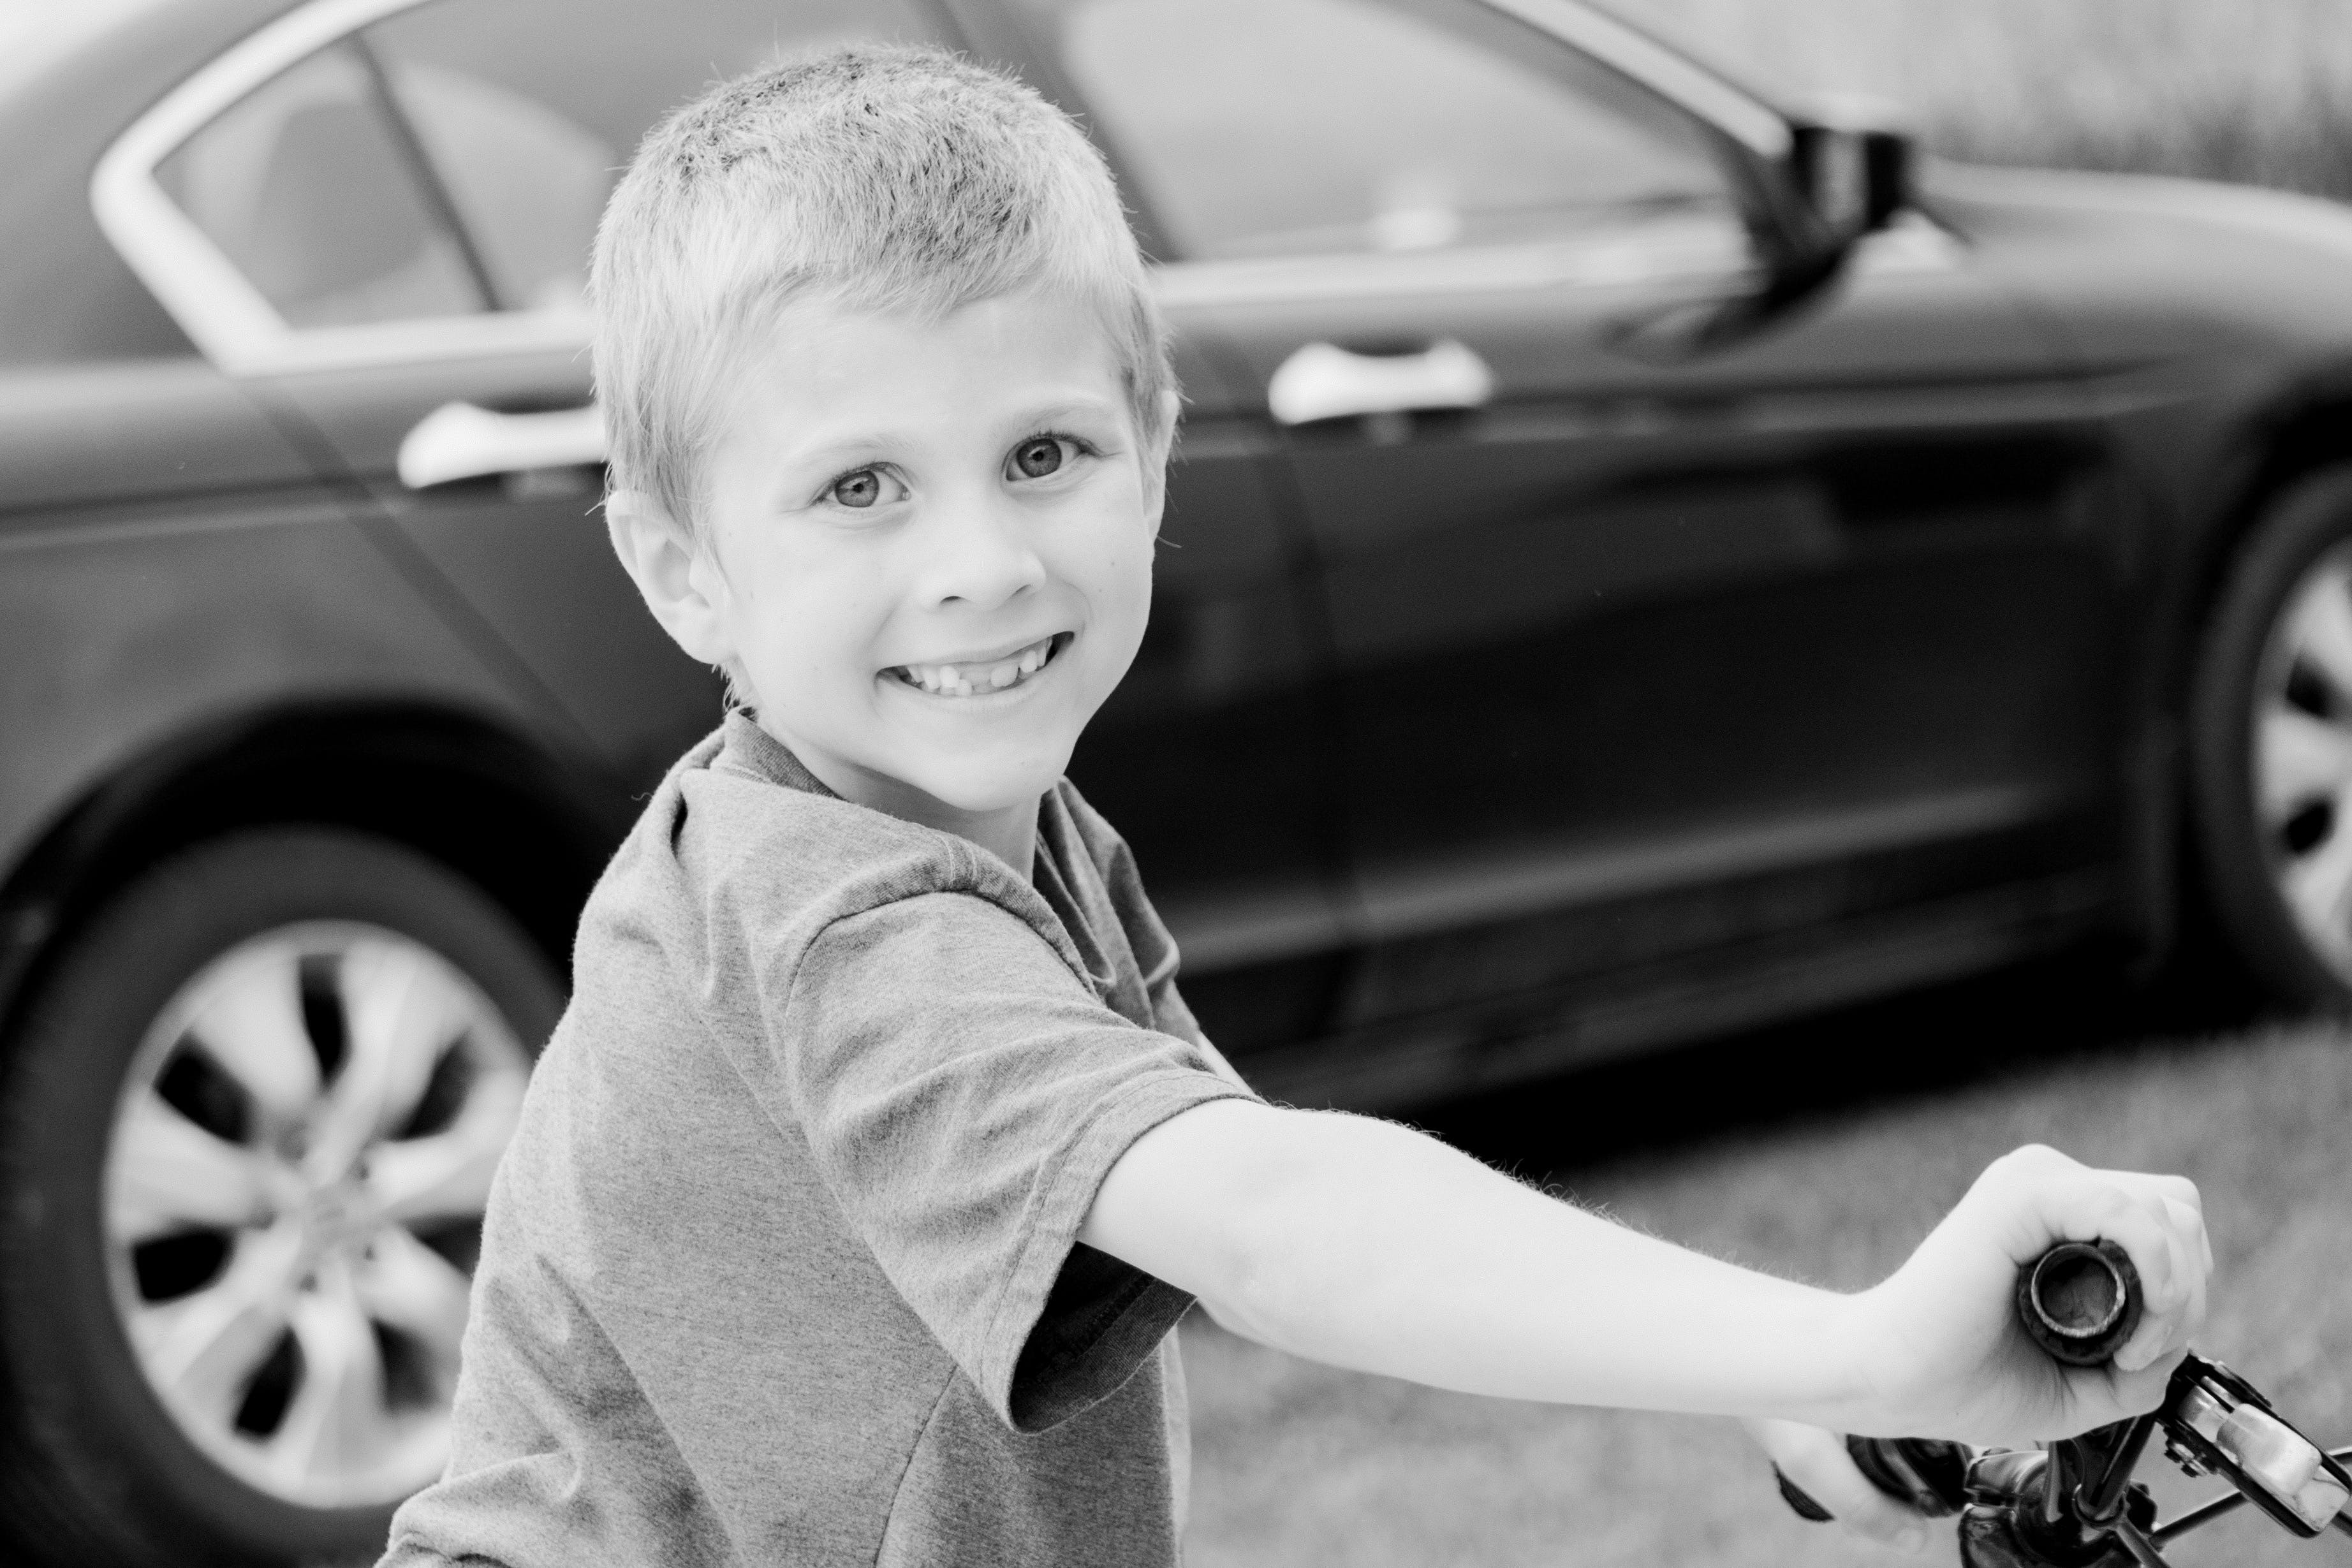 Grayscale Photo of Boy Riding Bicycle